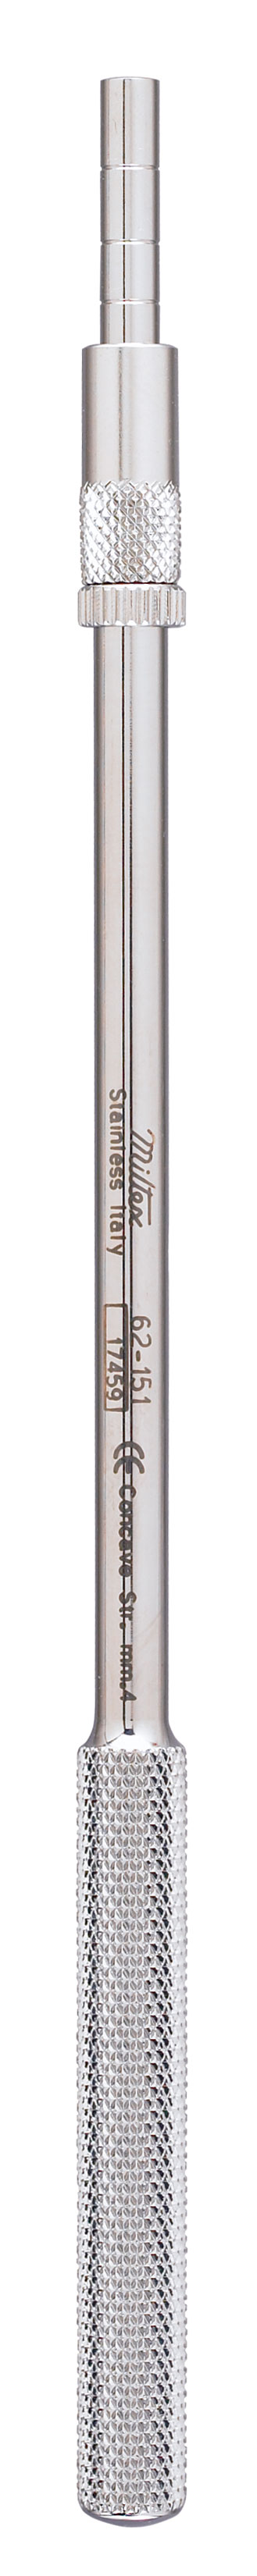 osteotome-with-stop-concave-4mm-straight-62-151-miltex.jpg